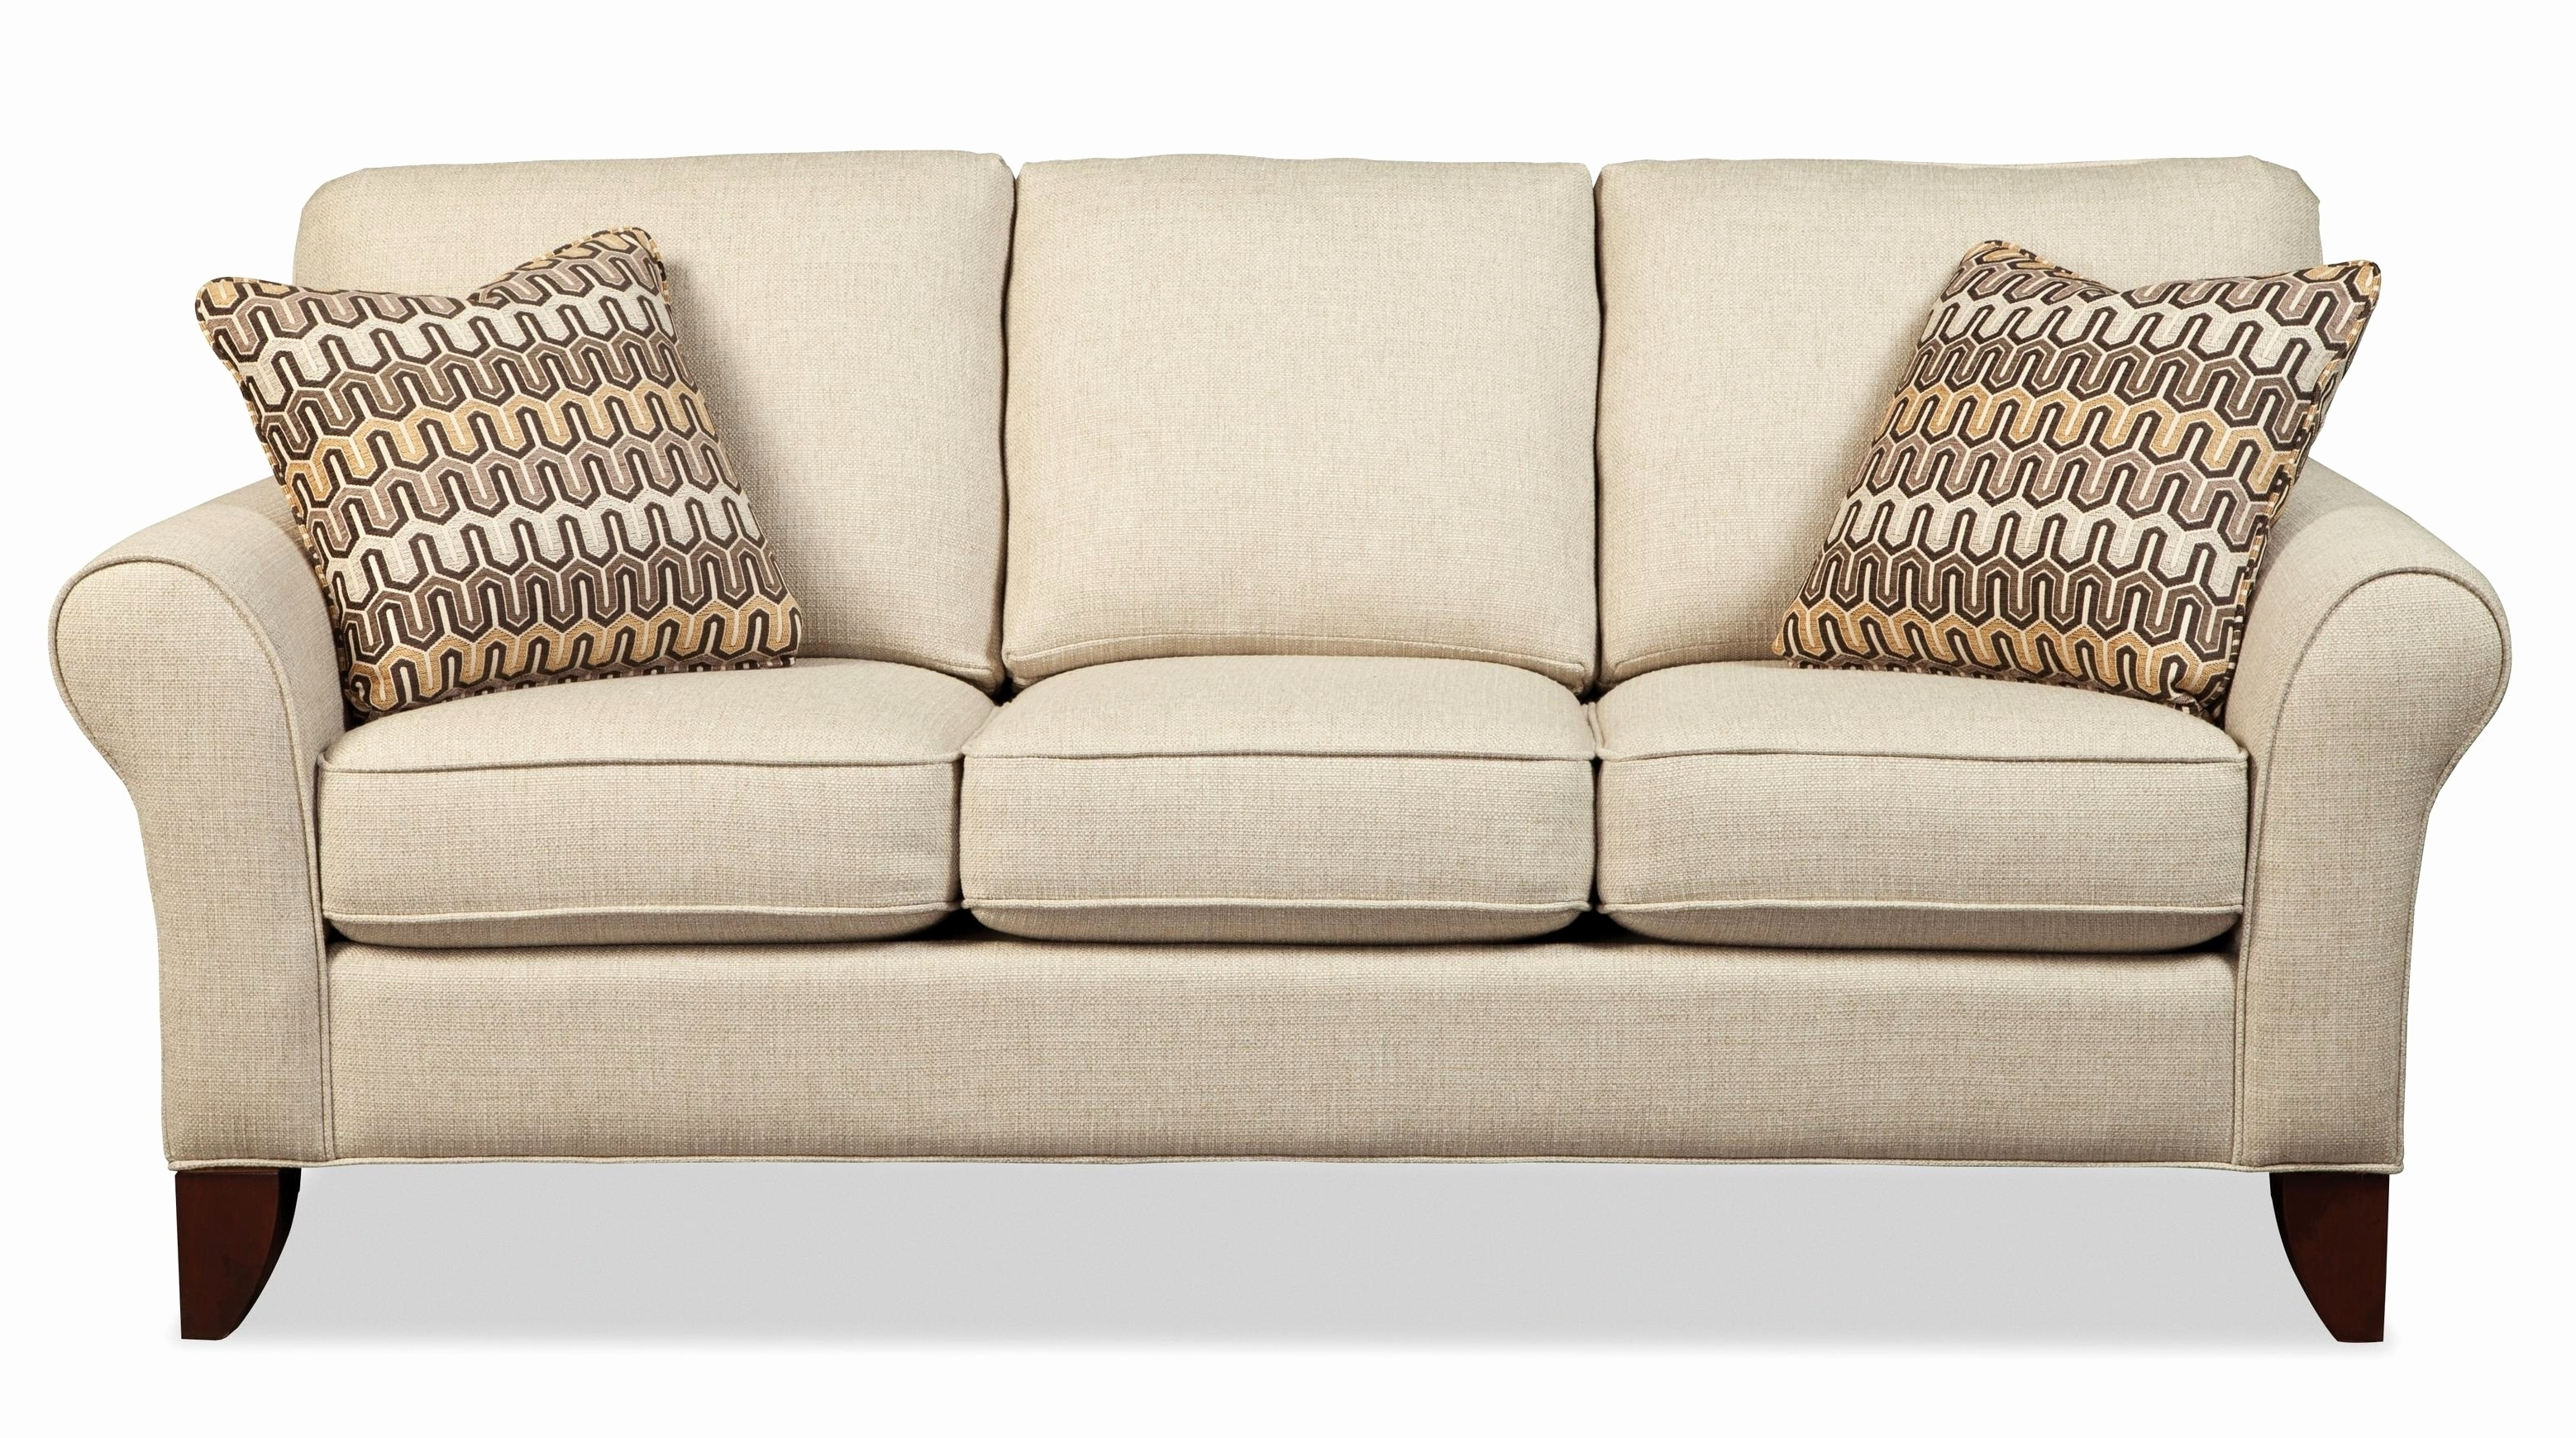 Small Scale Sofas In Latest Lovely Small Scale Leather Sofa 2018 – Couches And Sofas Ideas (View 13 of 20)